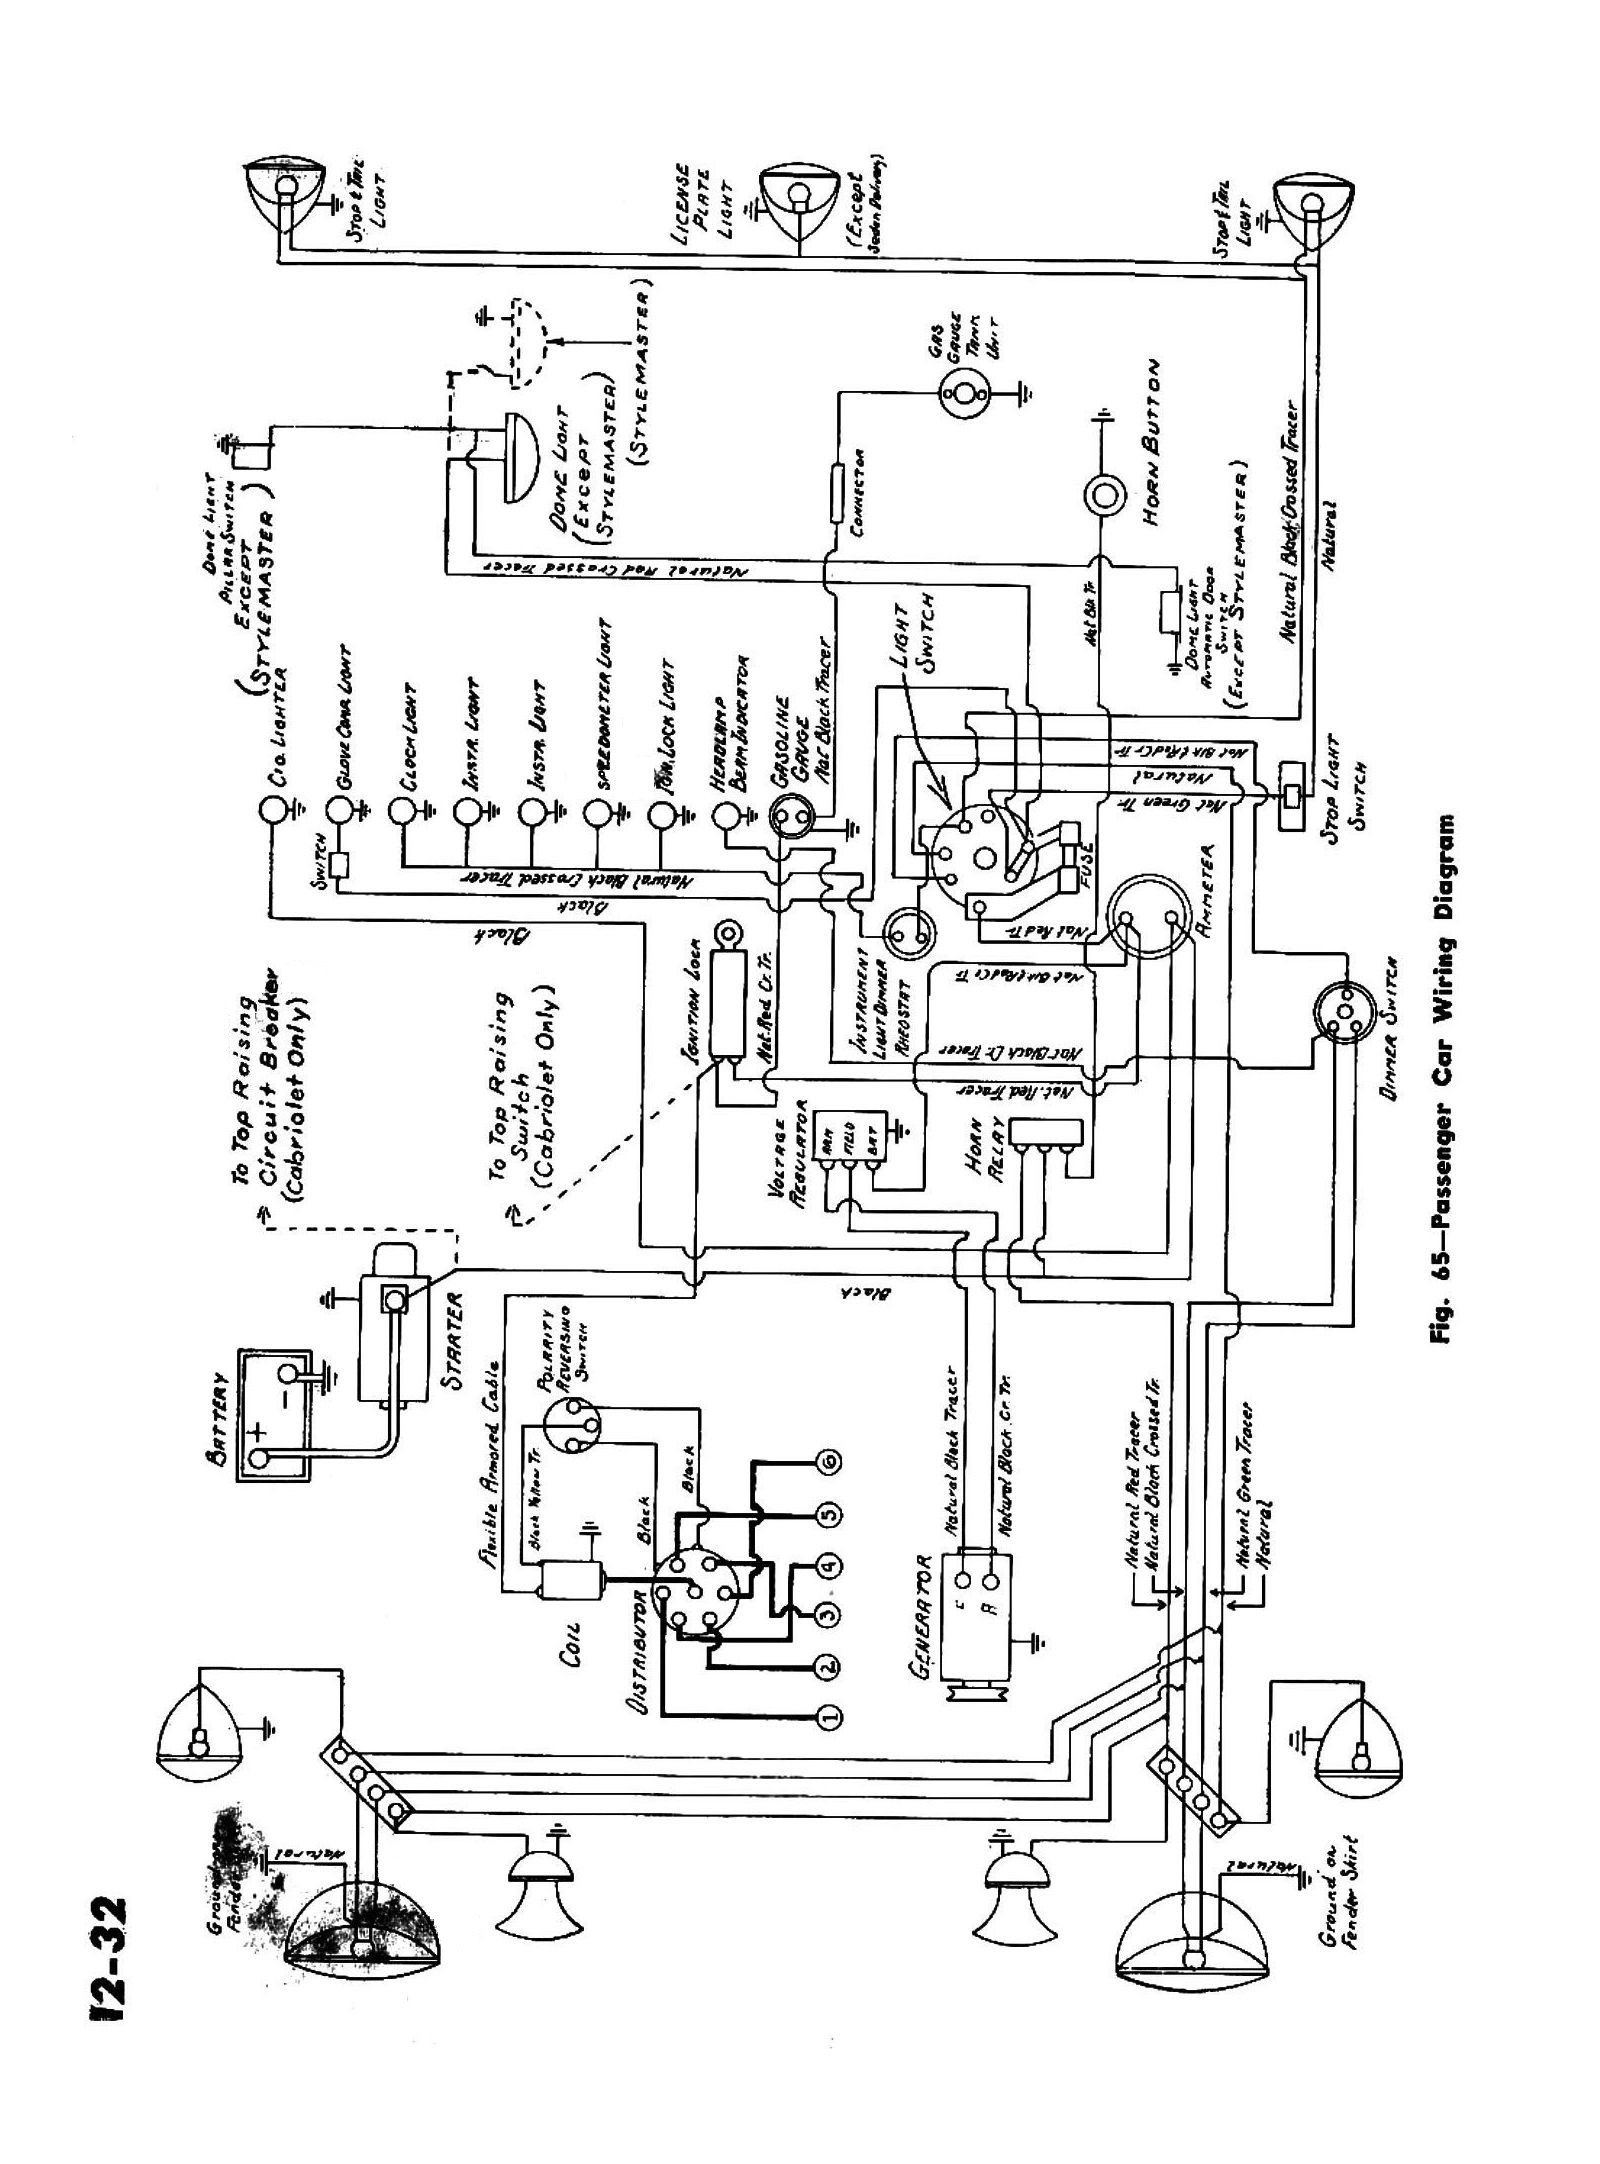 45car chevy wiring diagrams car wiring diagram at readyjetset.co